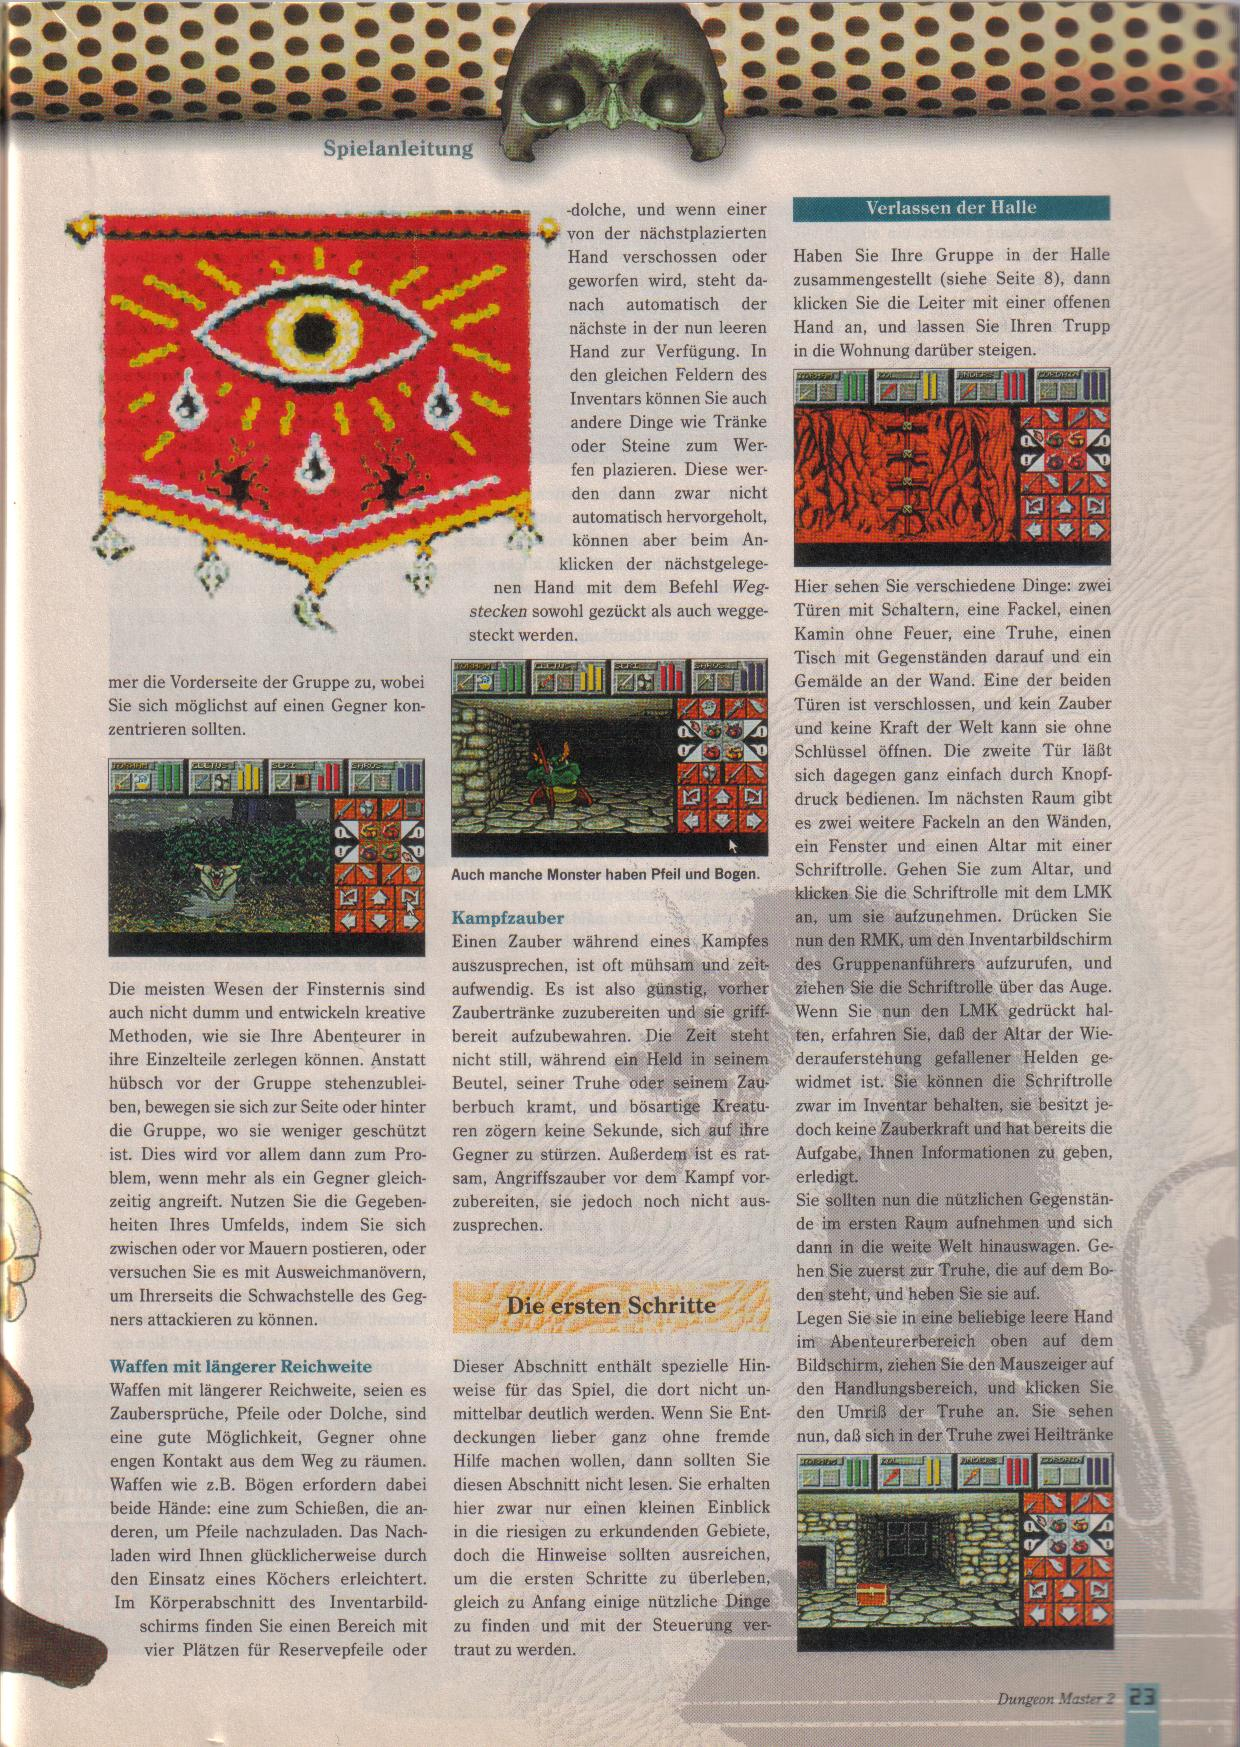 Dungeon Master II for PC (German, Best Seller Games) Page 23